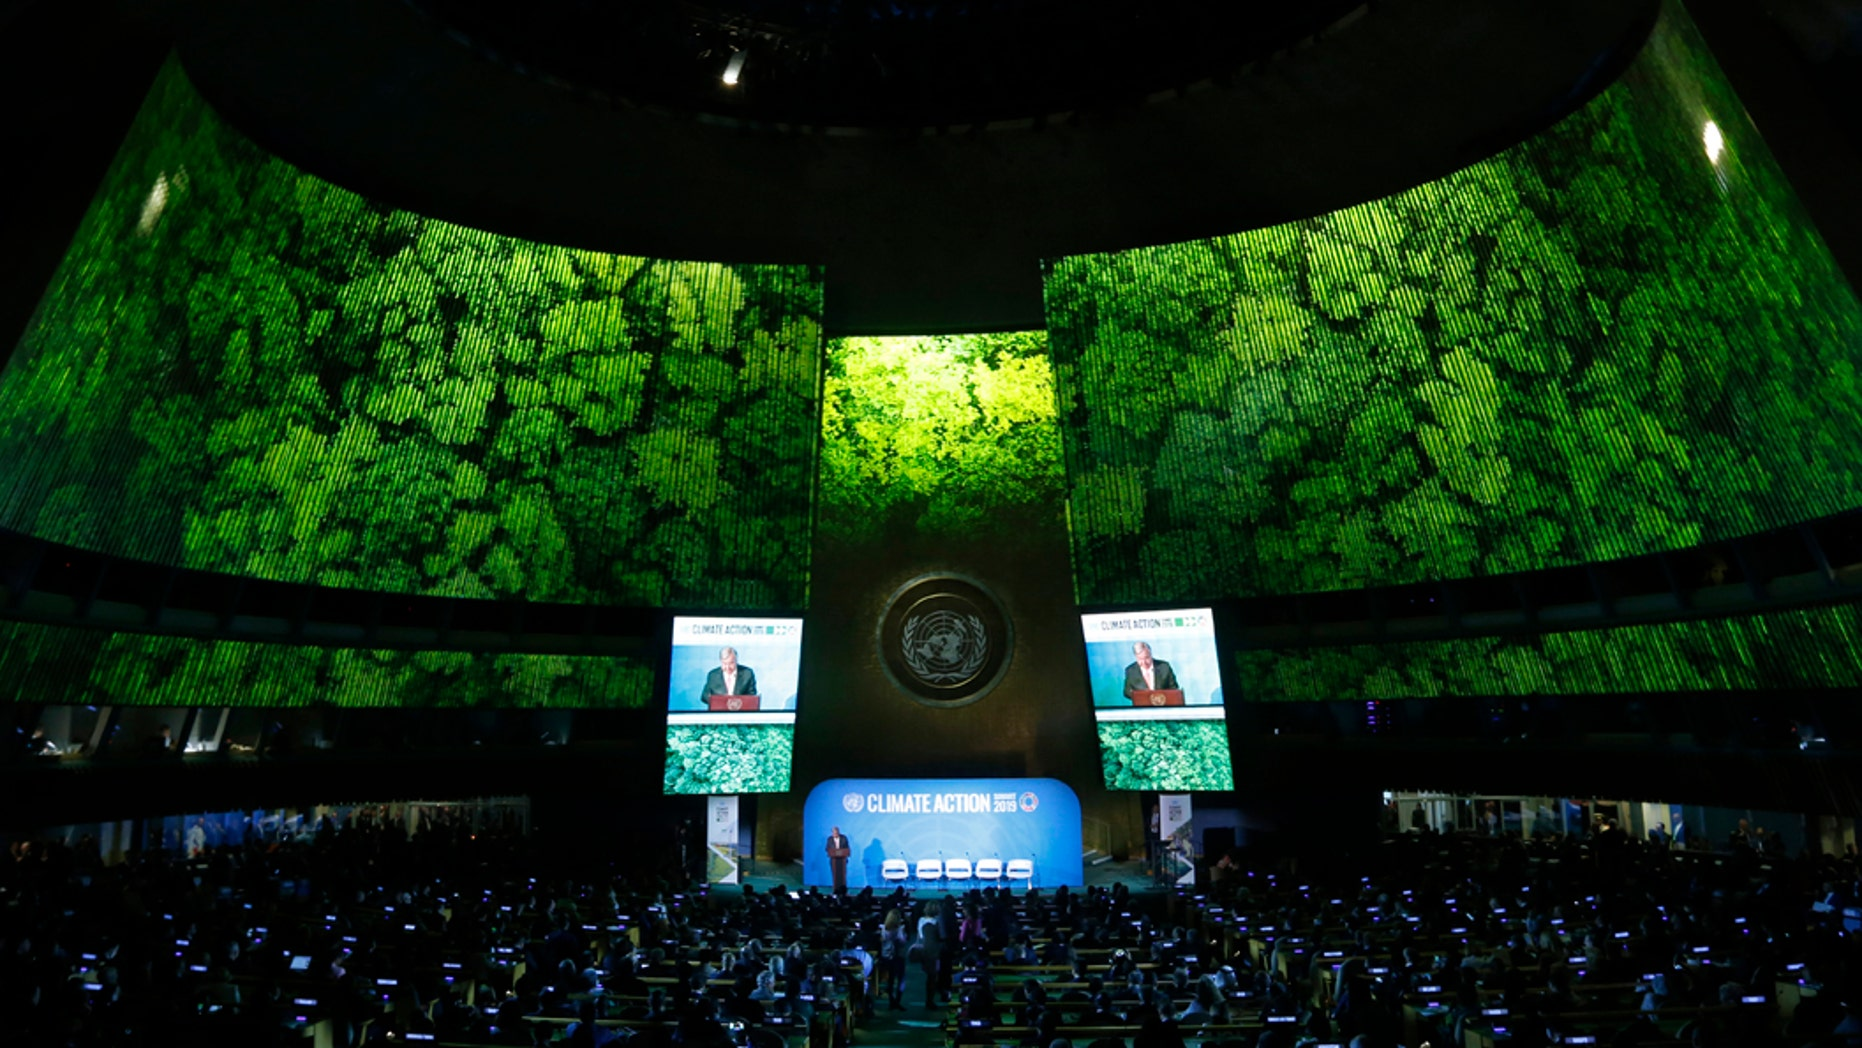 Secretary-General Antonio Guterres addresses the Climate Summit in the United Nations General Assembly at U.N. headquarters, Monday, Sept. 23, 2019. (AP Photo/Jason DeCrow)